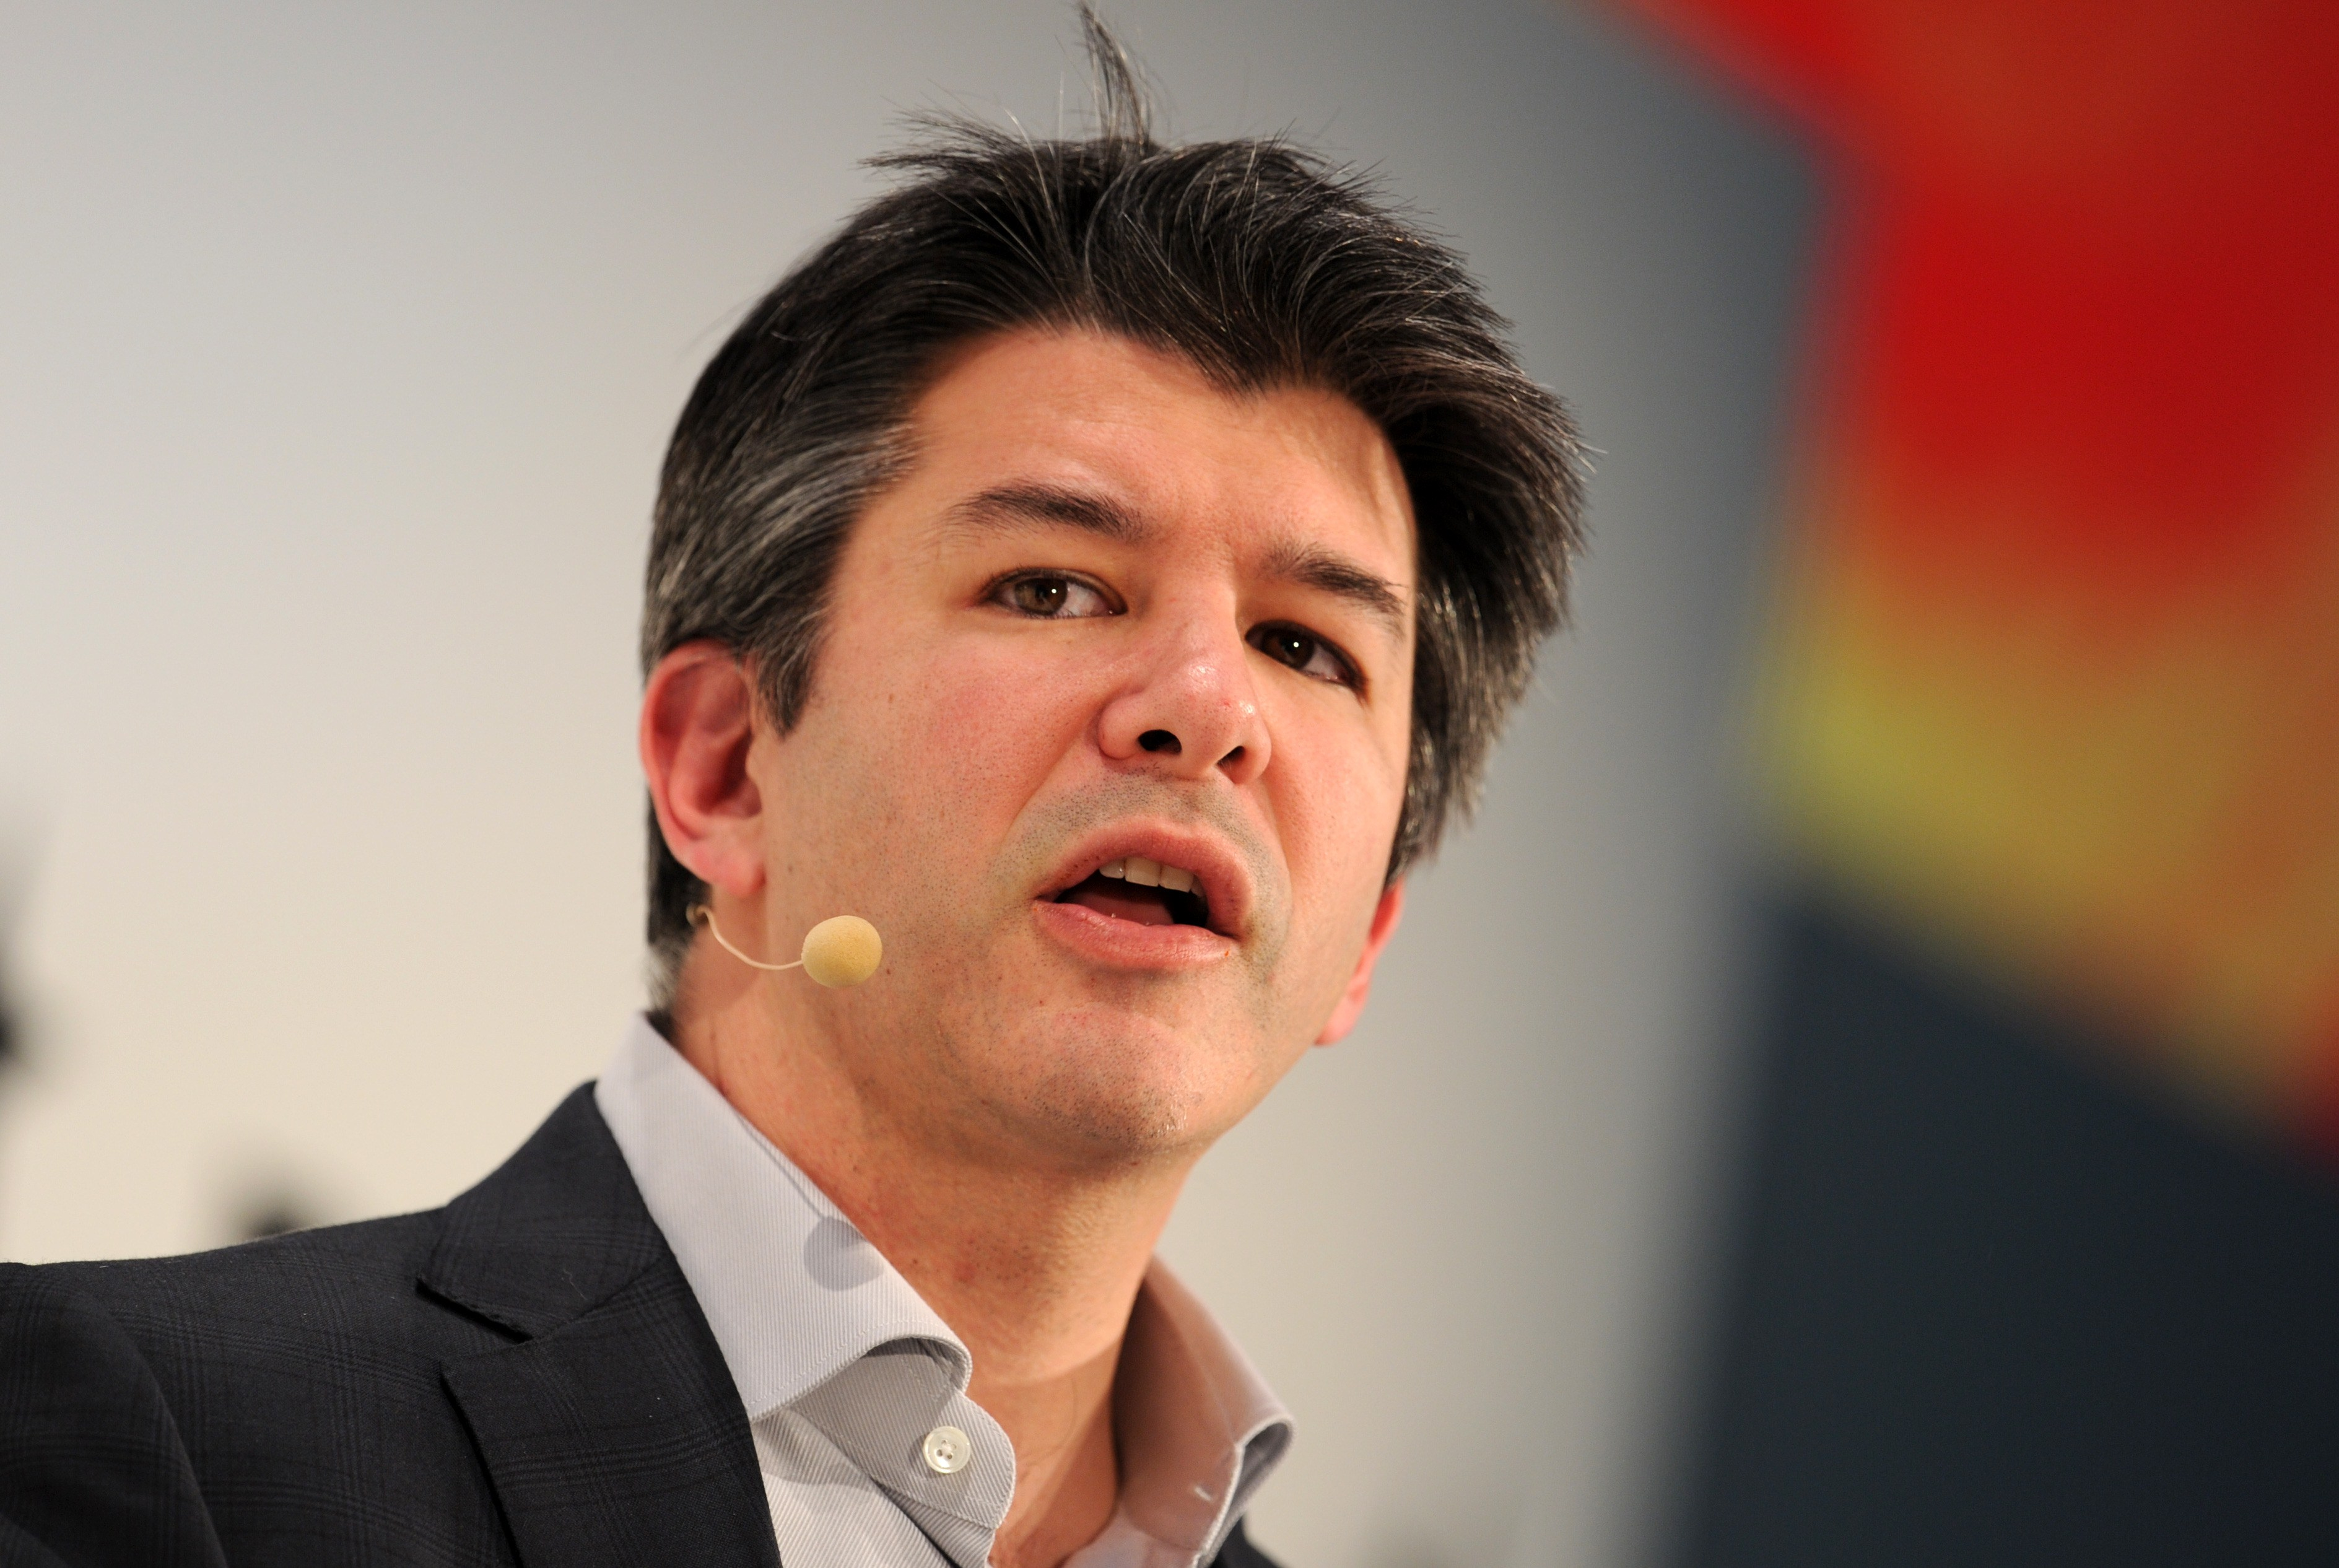 Uber CEO Kalanick quickly learned the dangers of not taking a stand on hot-button political issues.